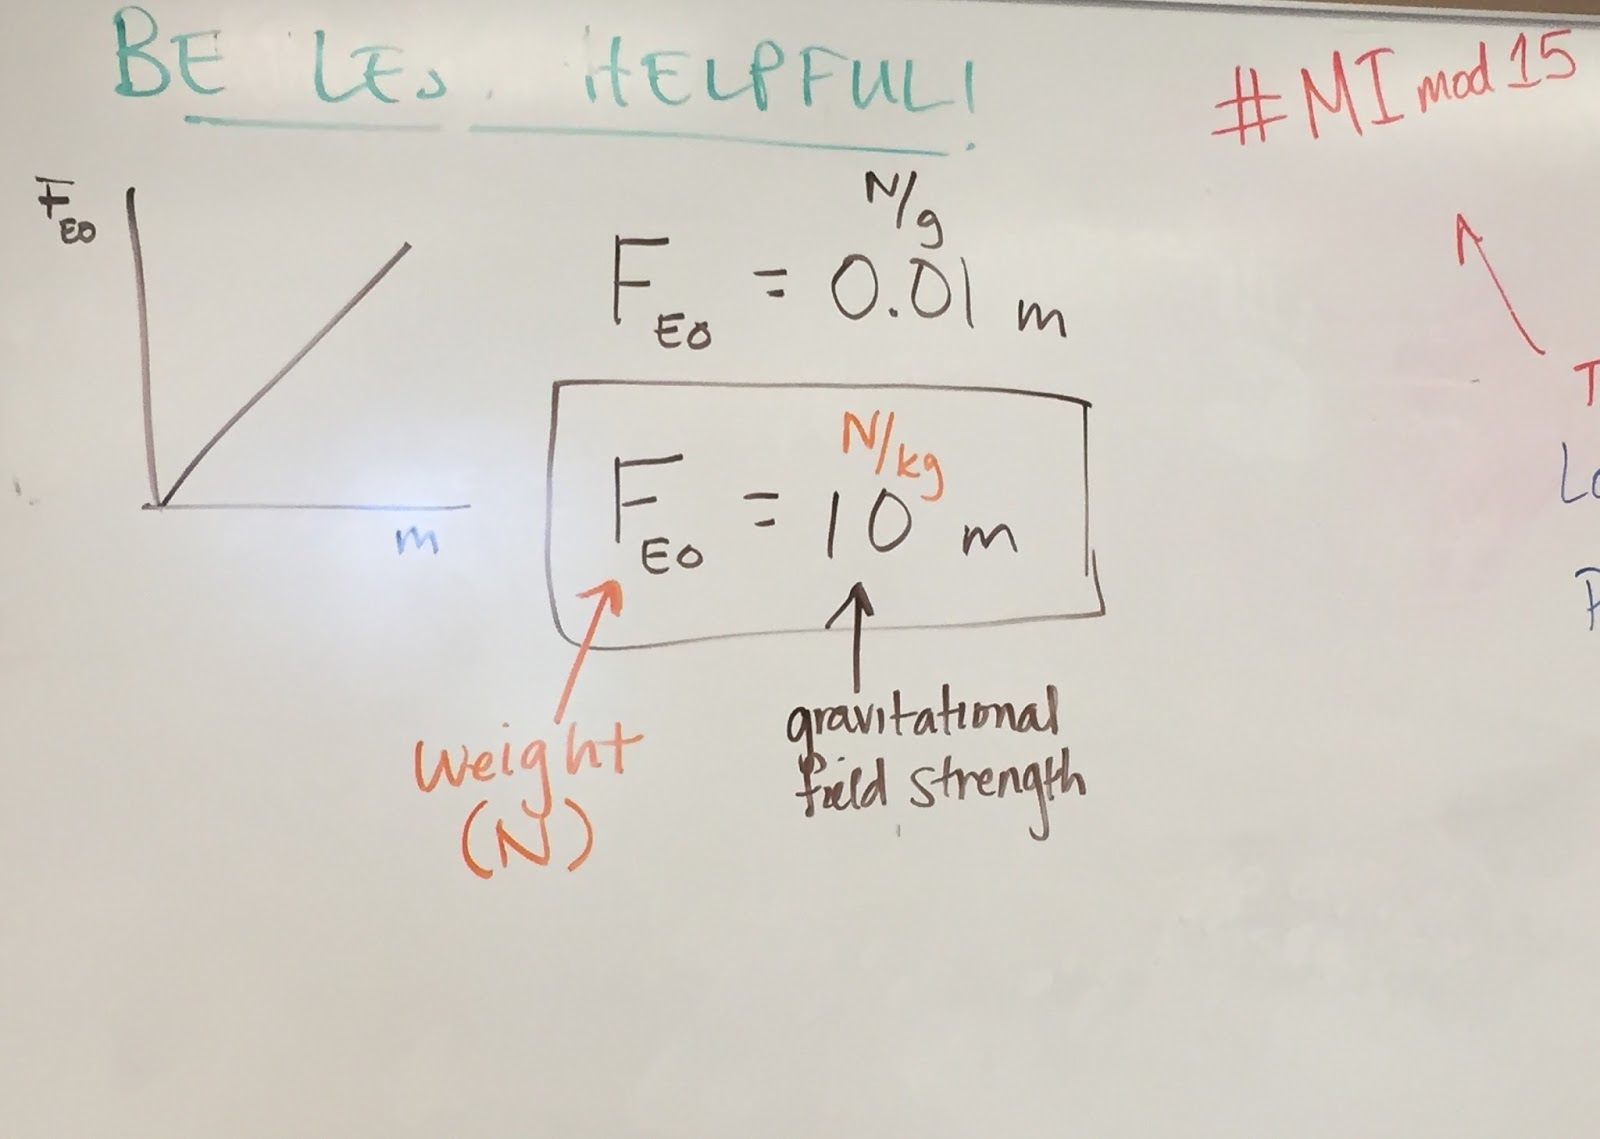 Modeling Physics Reflections Adam Alster Acceleration Due To Gravity Diagram The Free Body For This Force Of Earth On Object Is Equivalent Its Weight And W Mg G Represents Around 10 M S2